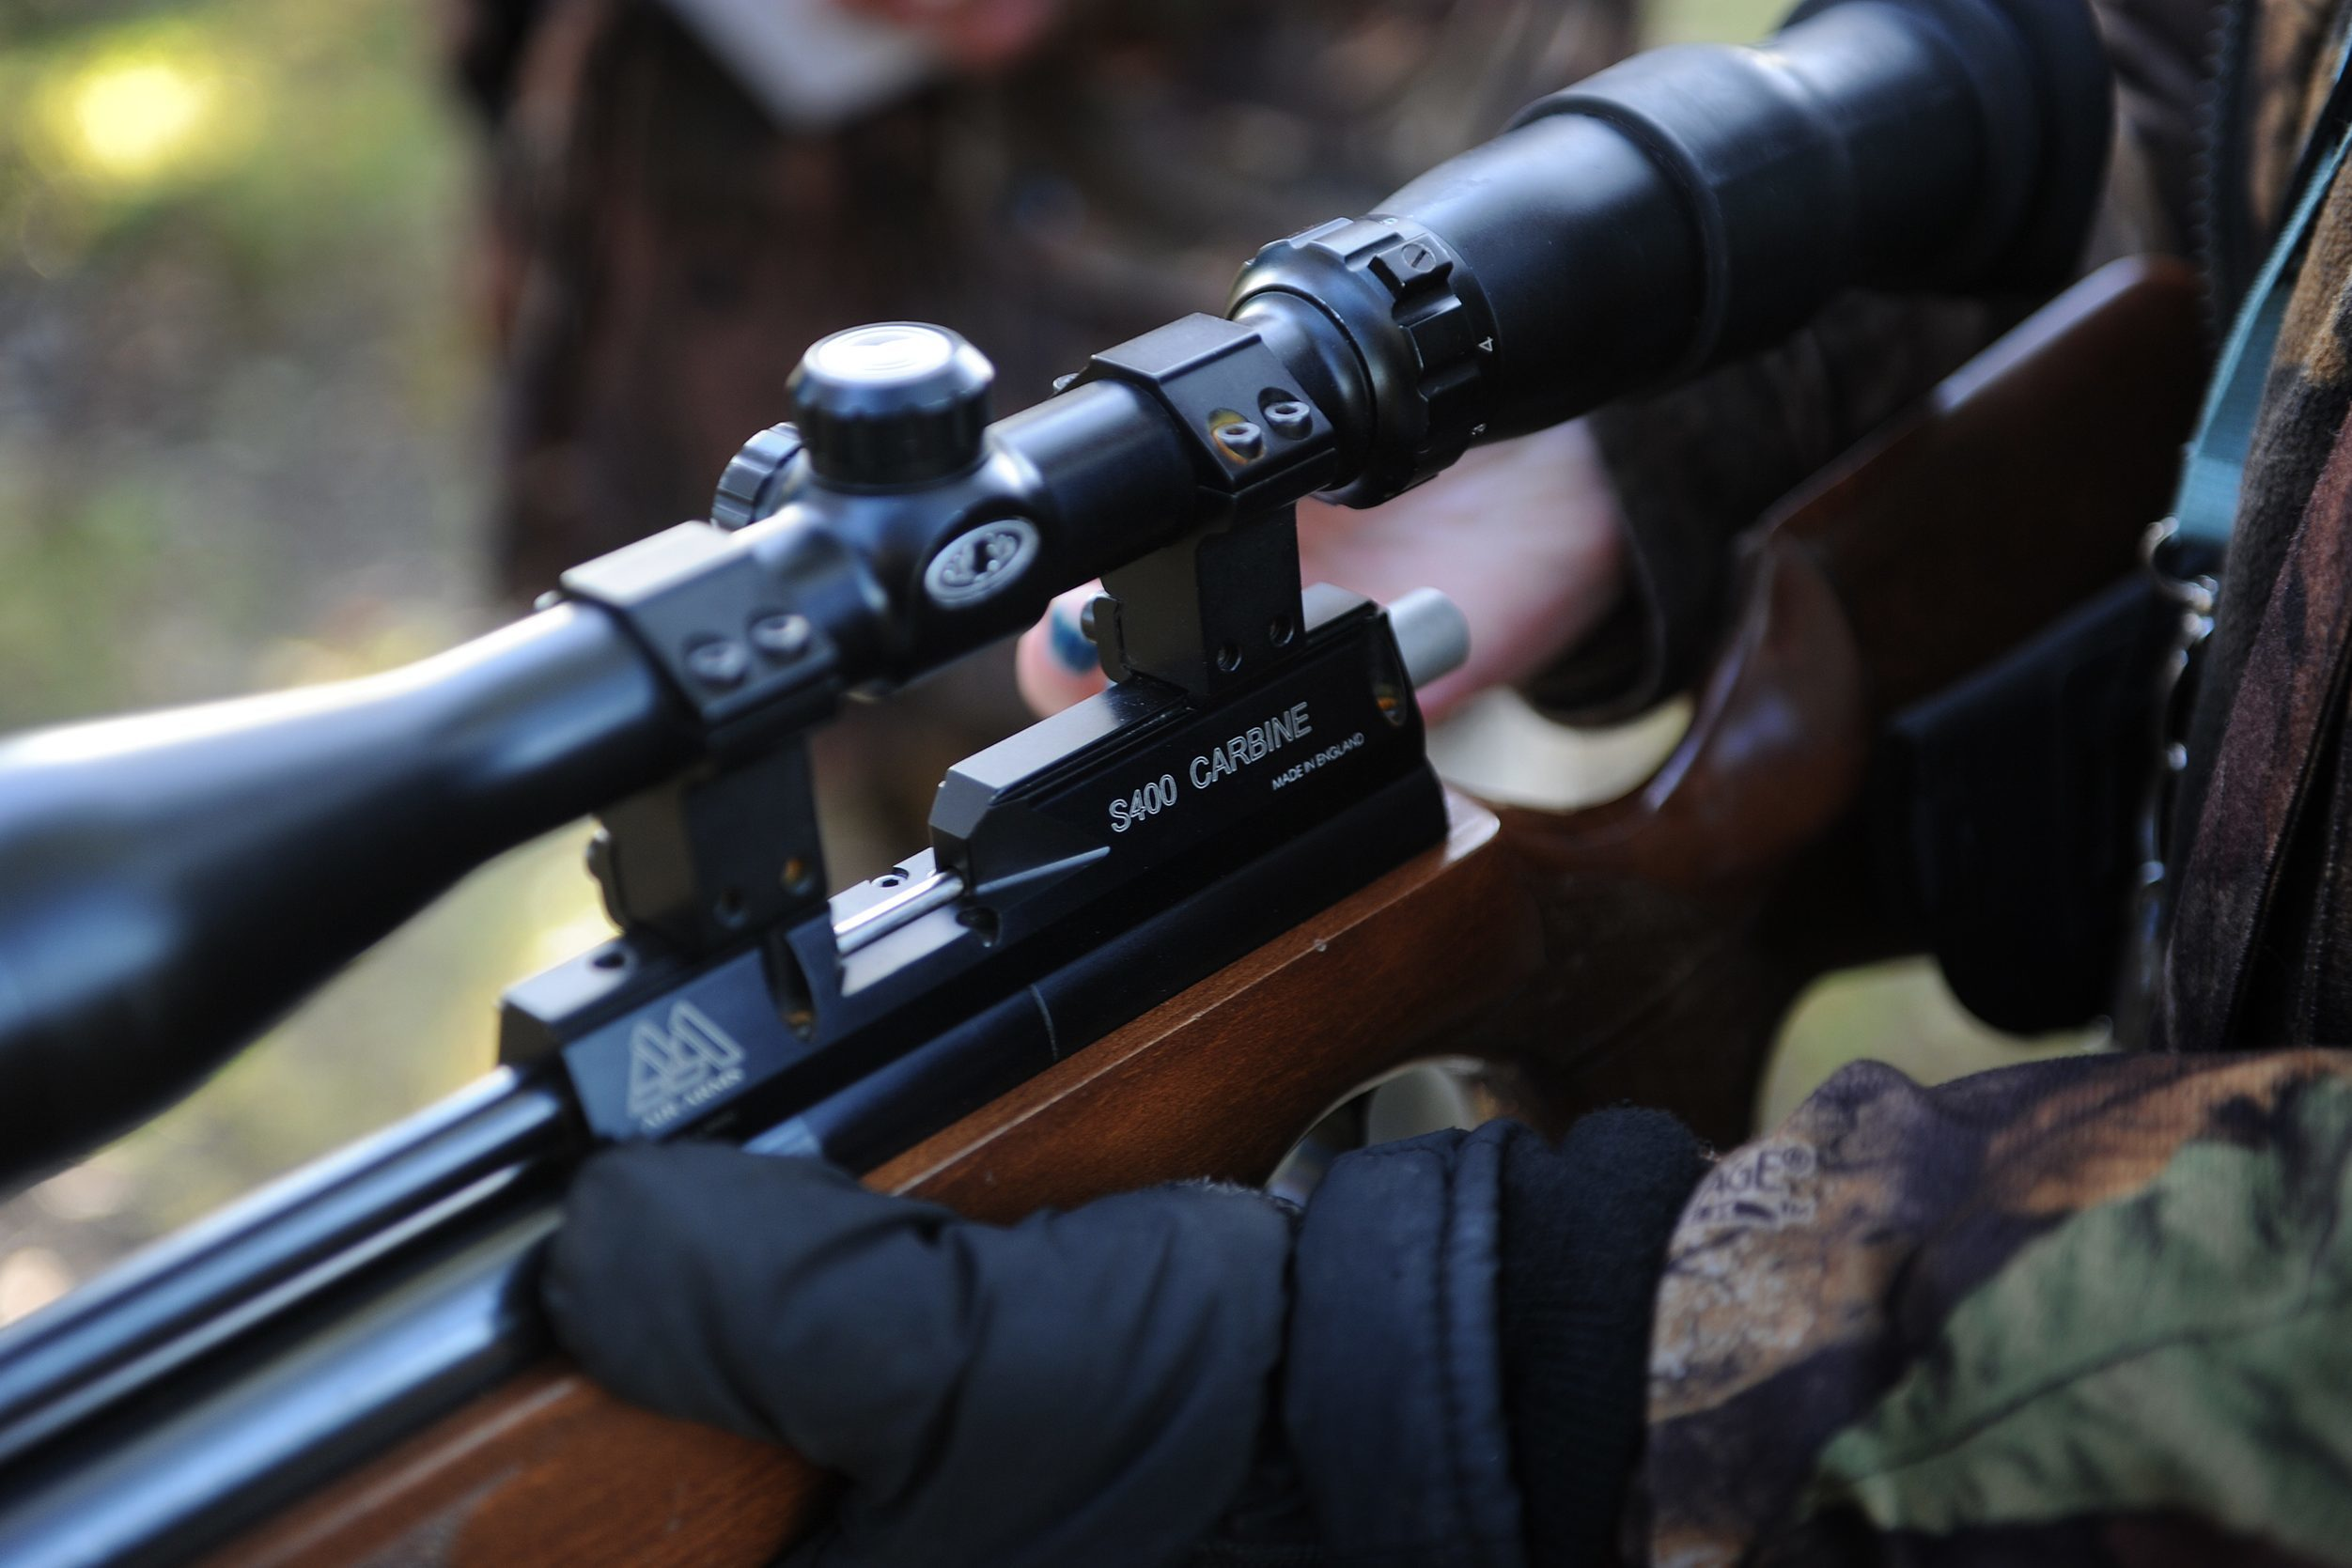 Delays in issusing air gun licences are causing stress, it has been claimed.